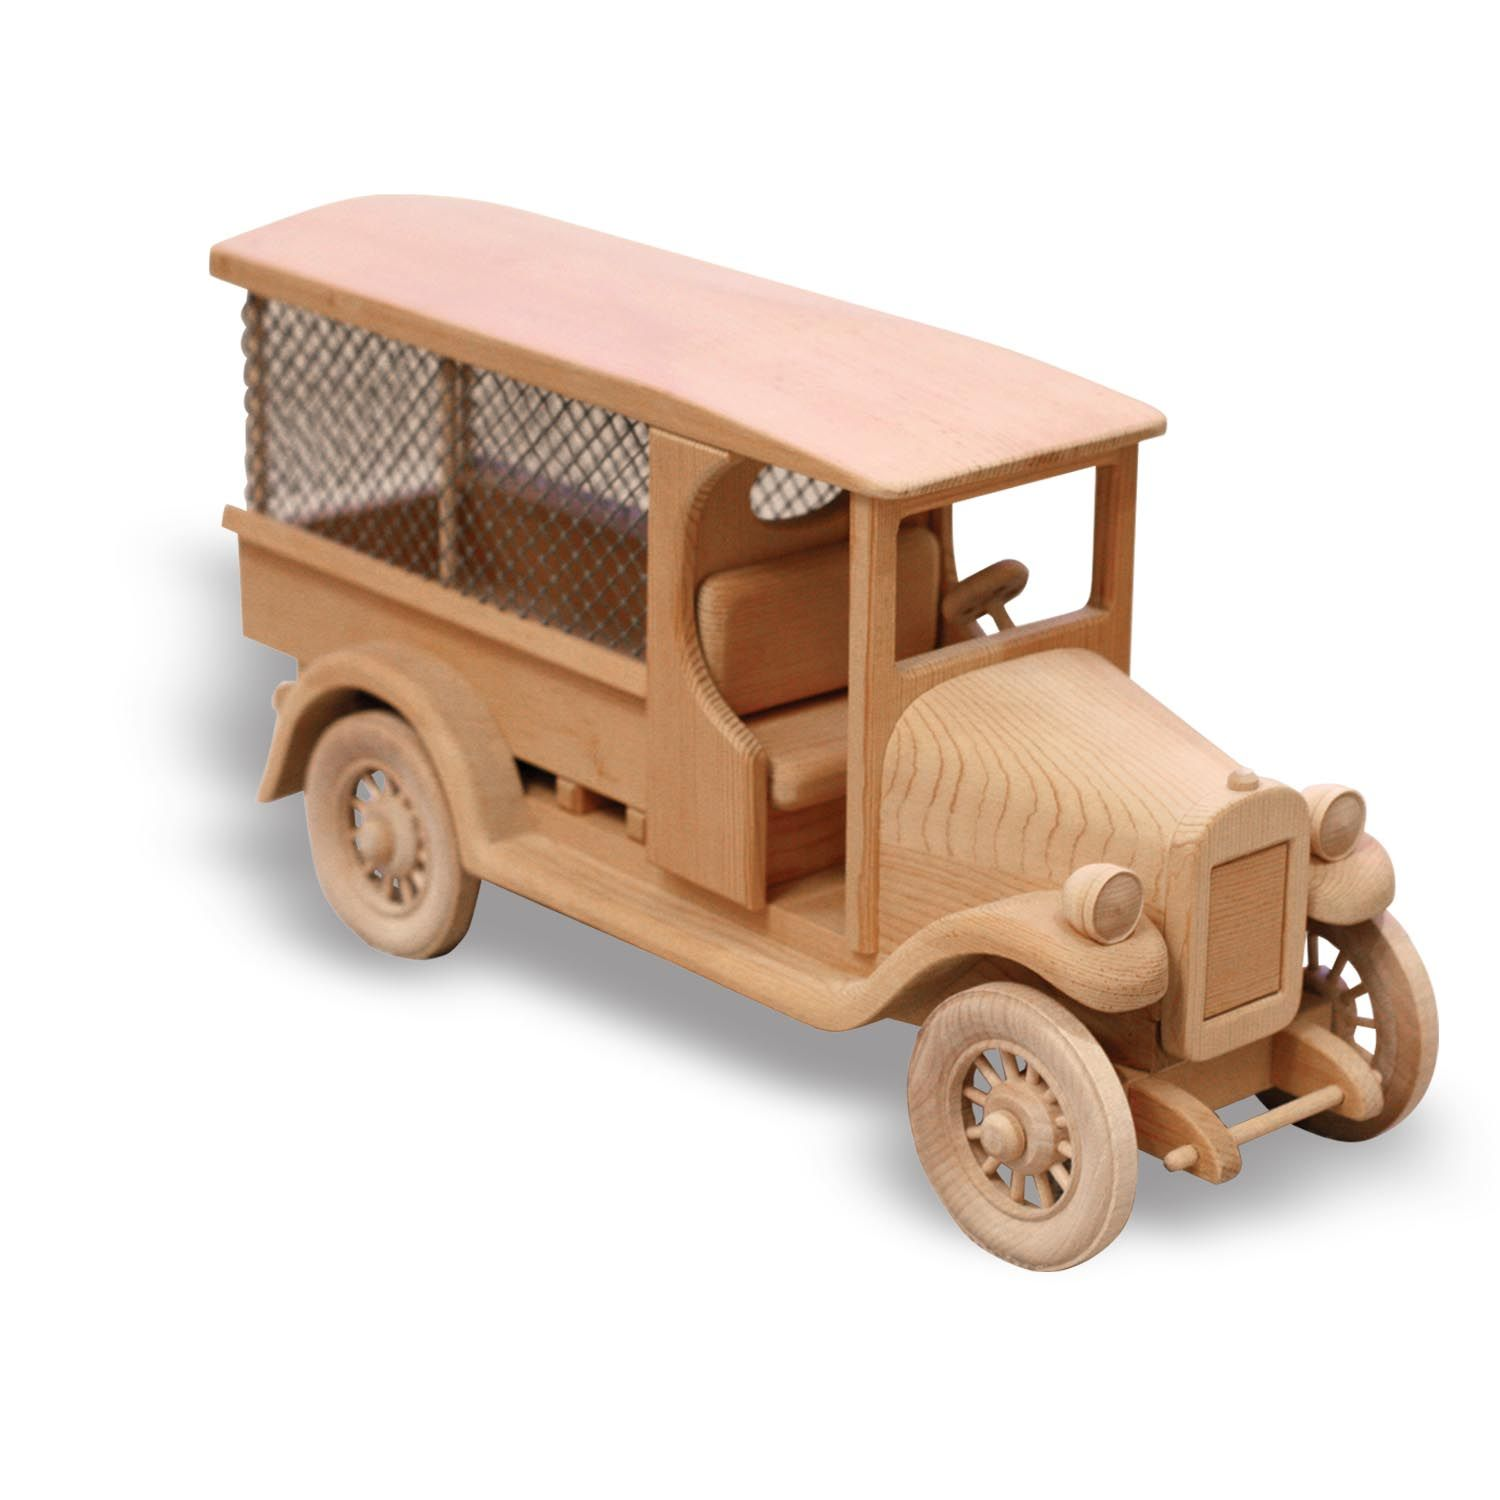 40 - railroad baggage car | wood toys | wood toys plans